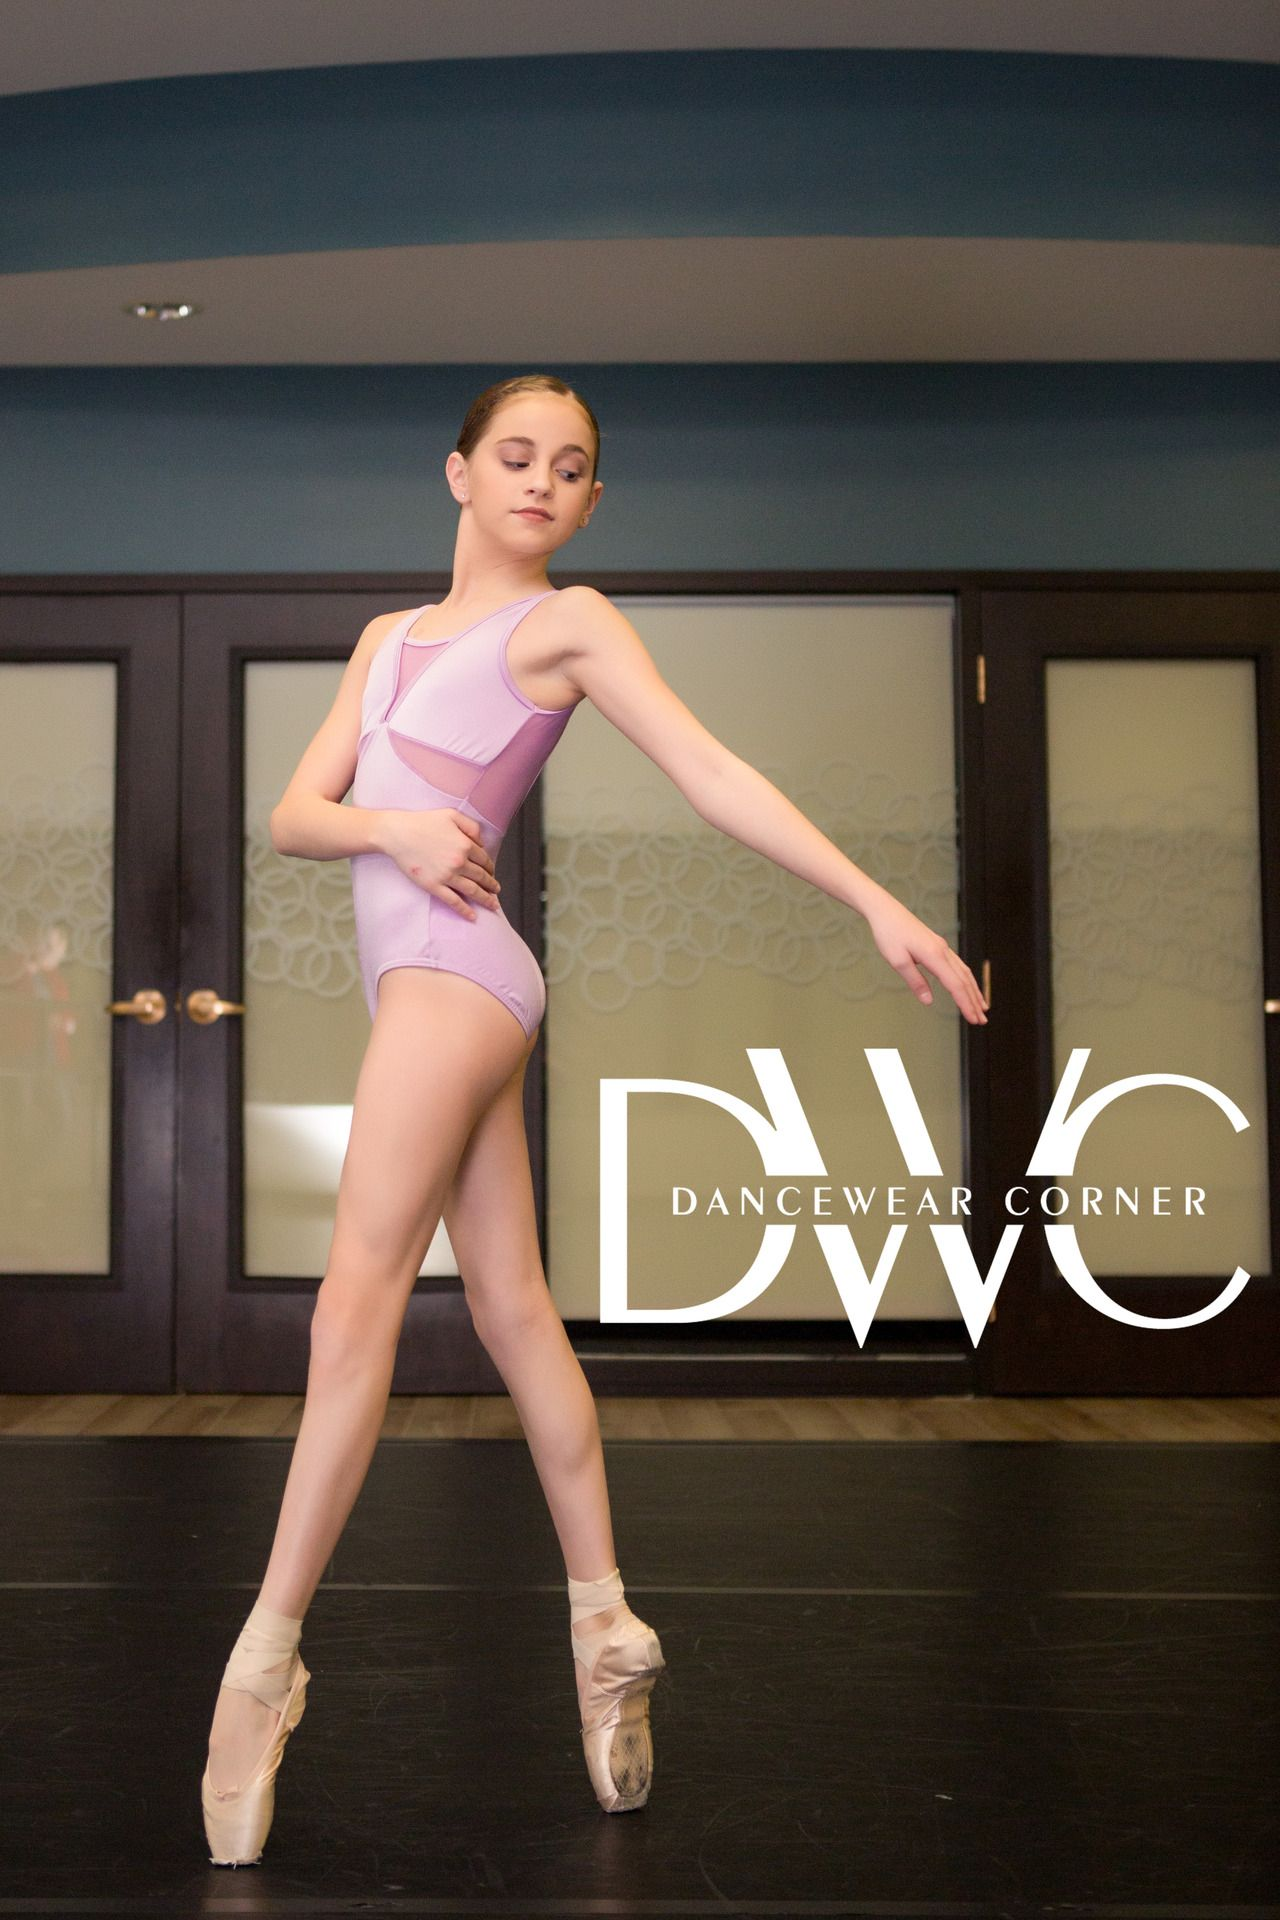 132005004 Fashion and style all in one amazing leotard from the Tiler Peck ...